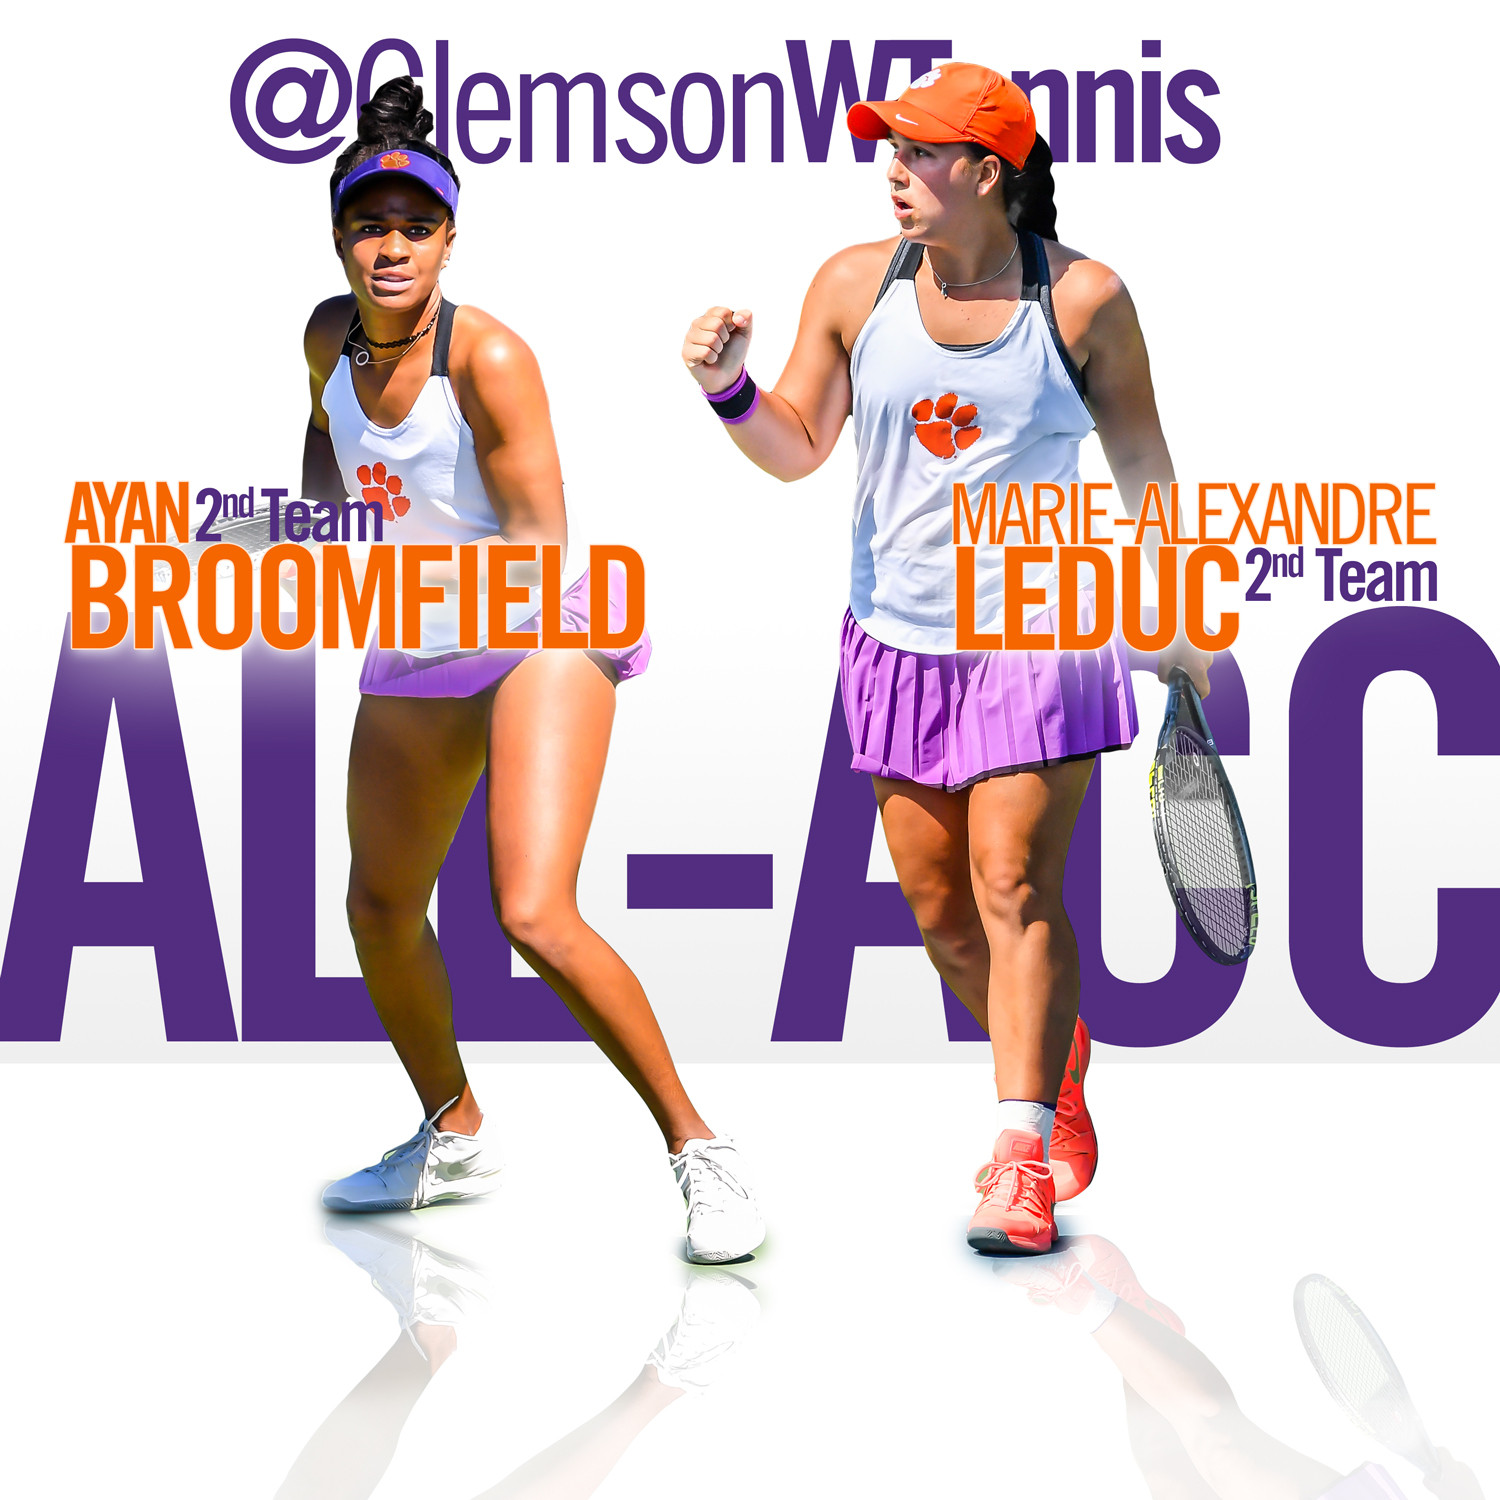 Broomfield & Leduc Named to 2017 All-ACC Second Team